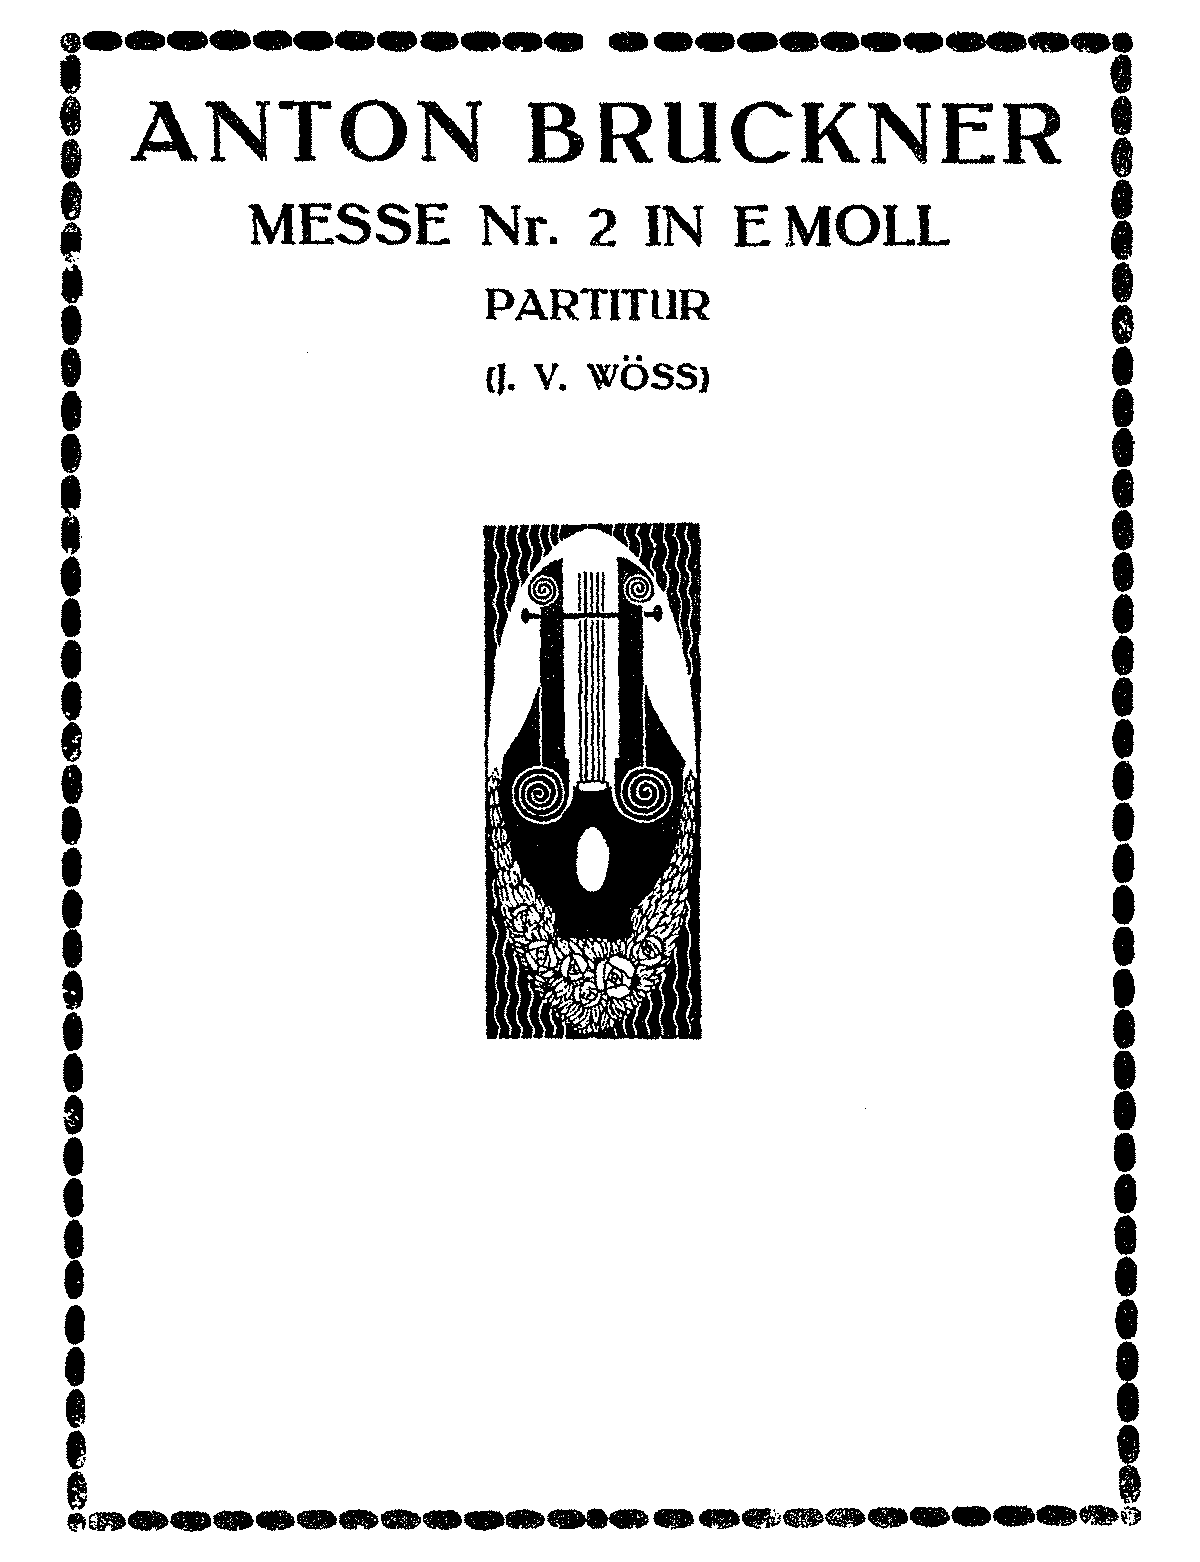 PMLP53875-Bruckner - Messe No.2 Full Score.PDF